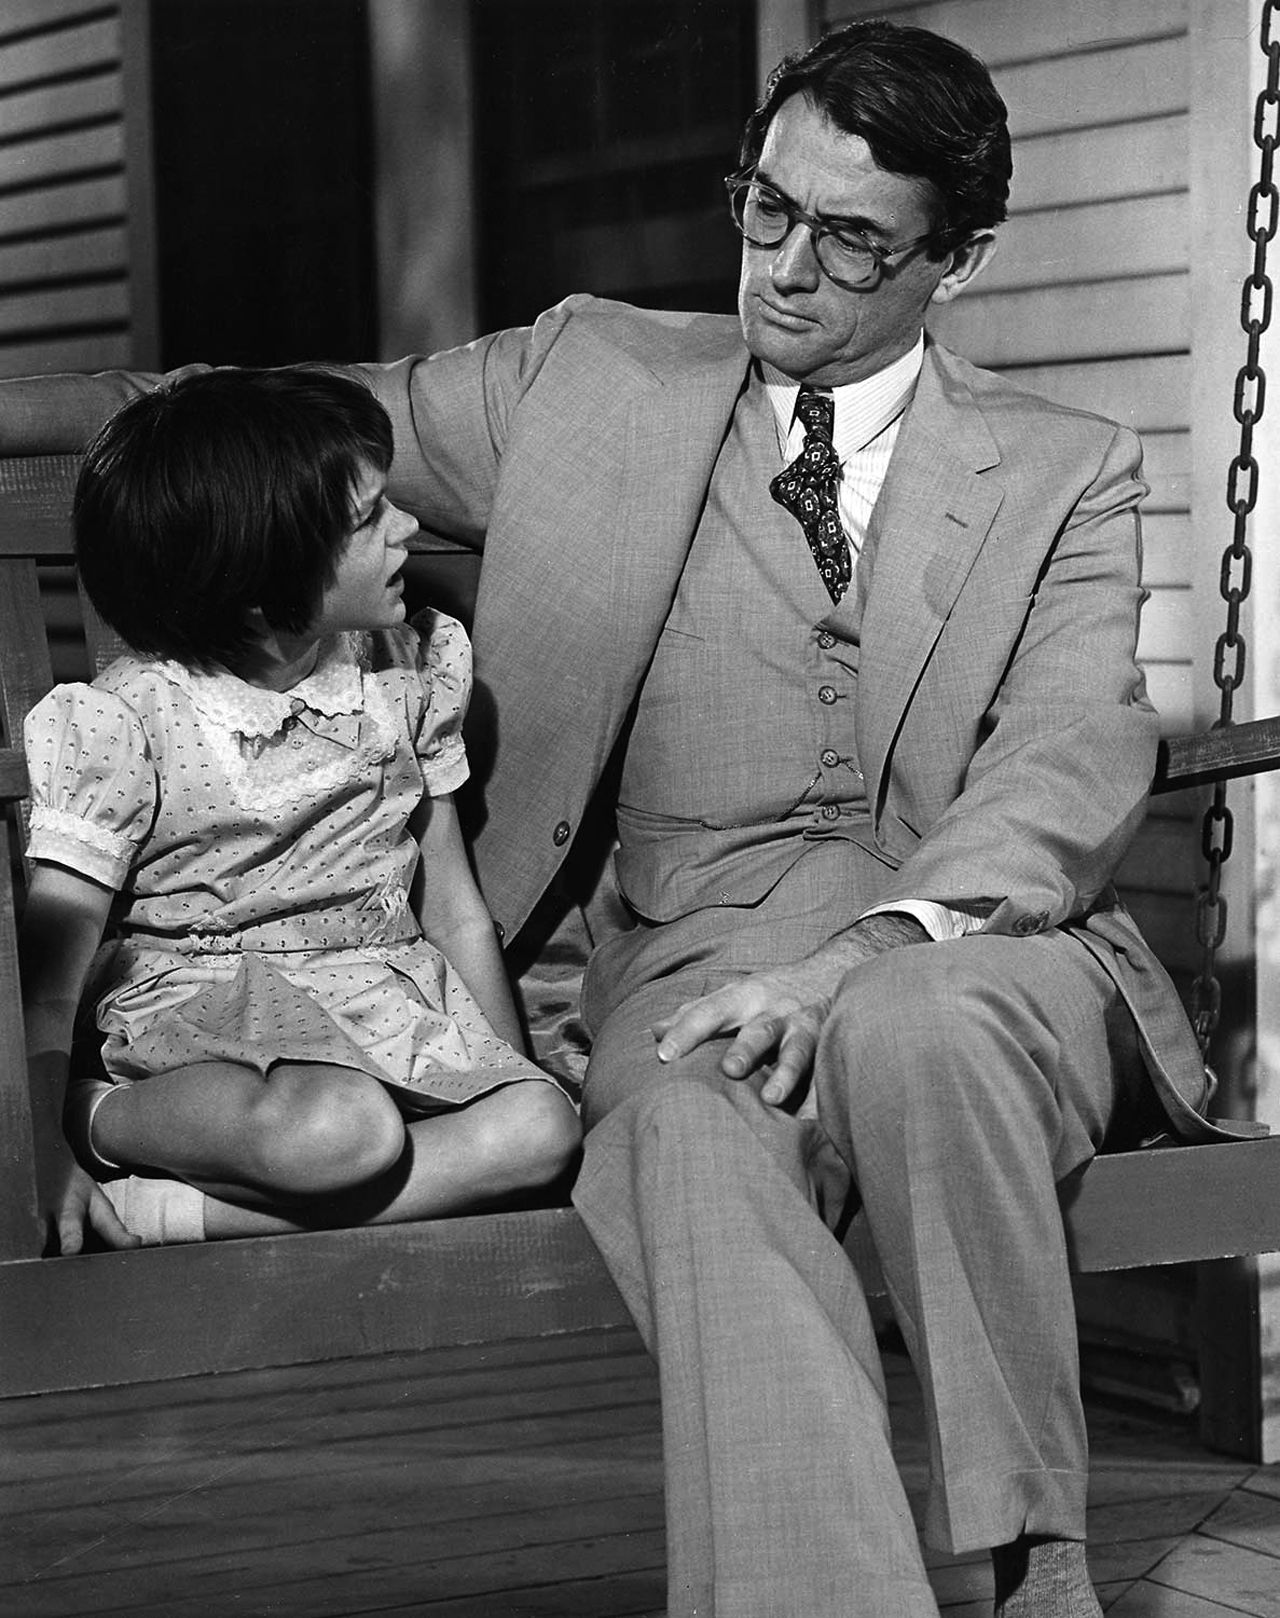 atticus finch s portrayal kill mockingbird harper lee far Aaron sorkin's to kill a mockingbird play could rescue atticus finch after go set a watchman , everyone's favorite southern lawyer needs a hero sorkin could be it.